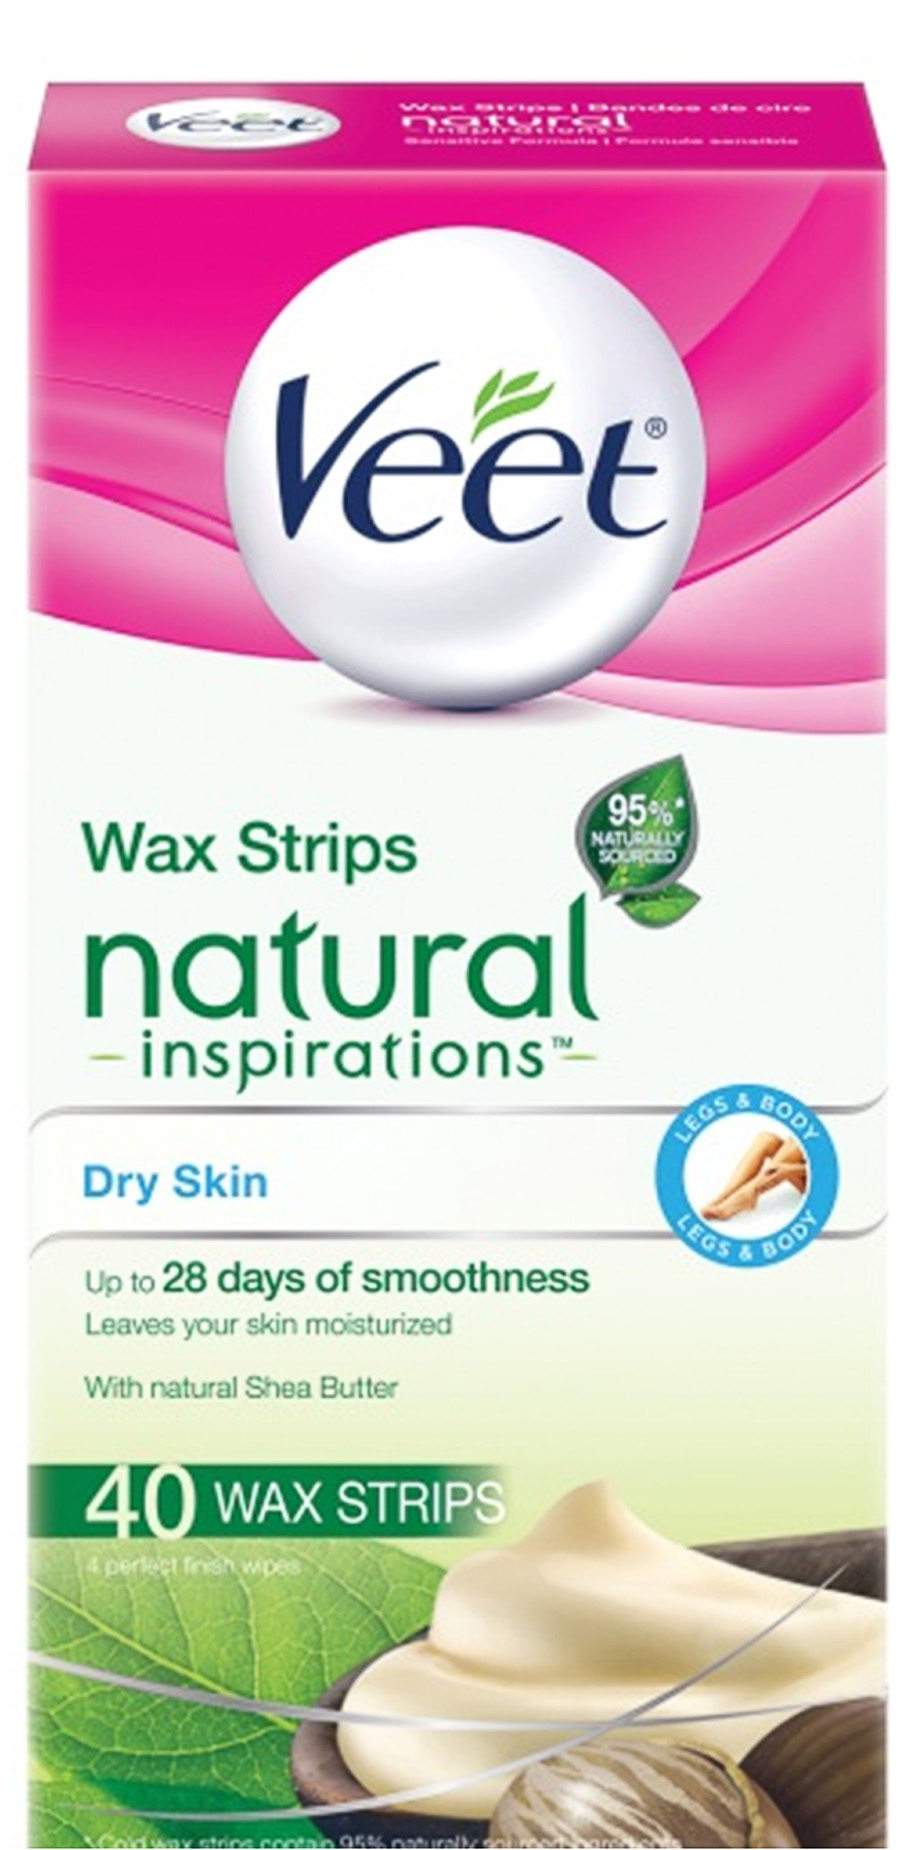 VEET® Natural Inspirations™ Wax Strips - Dry Skin (Wipes) (Canada)